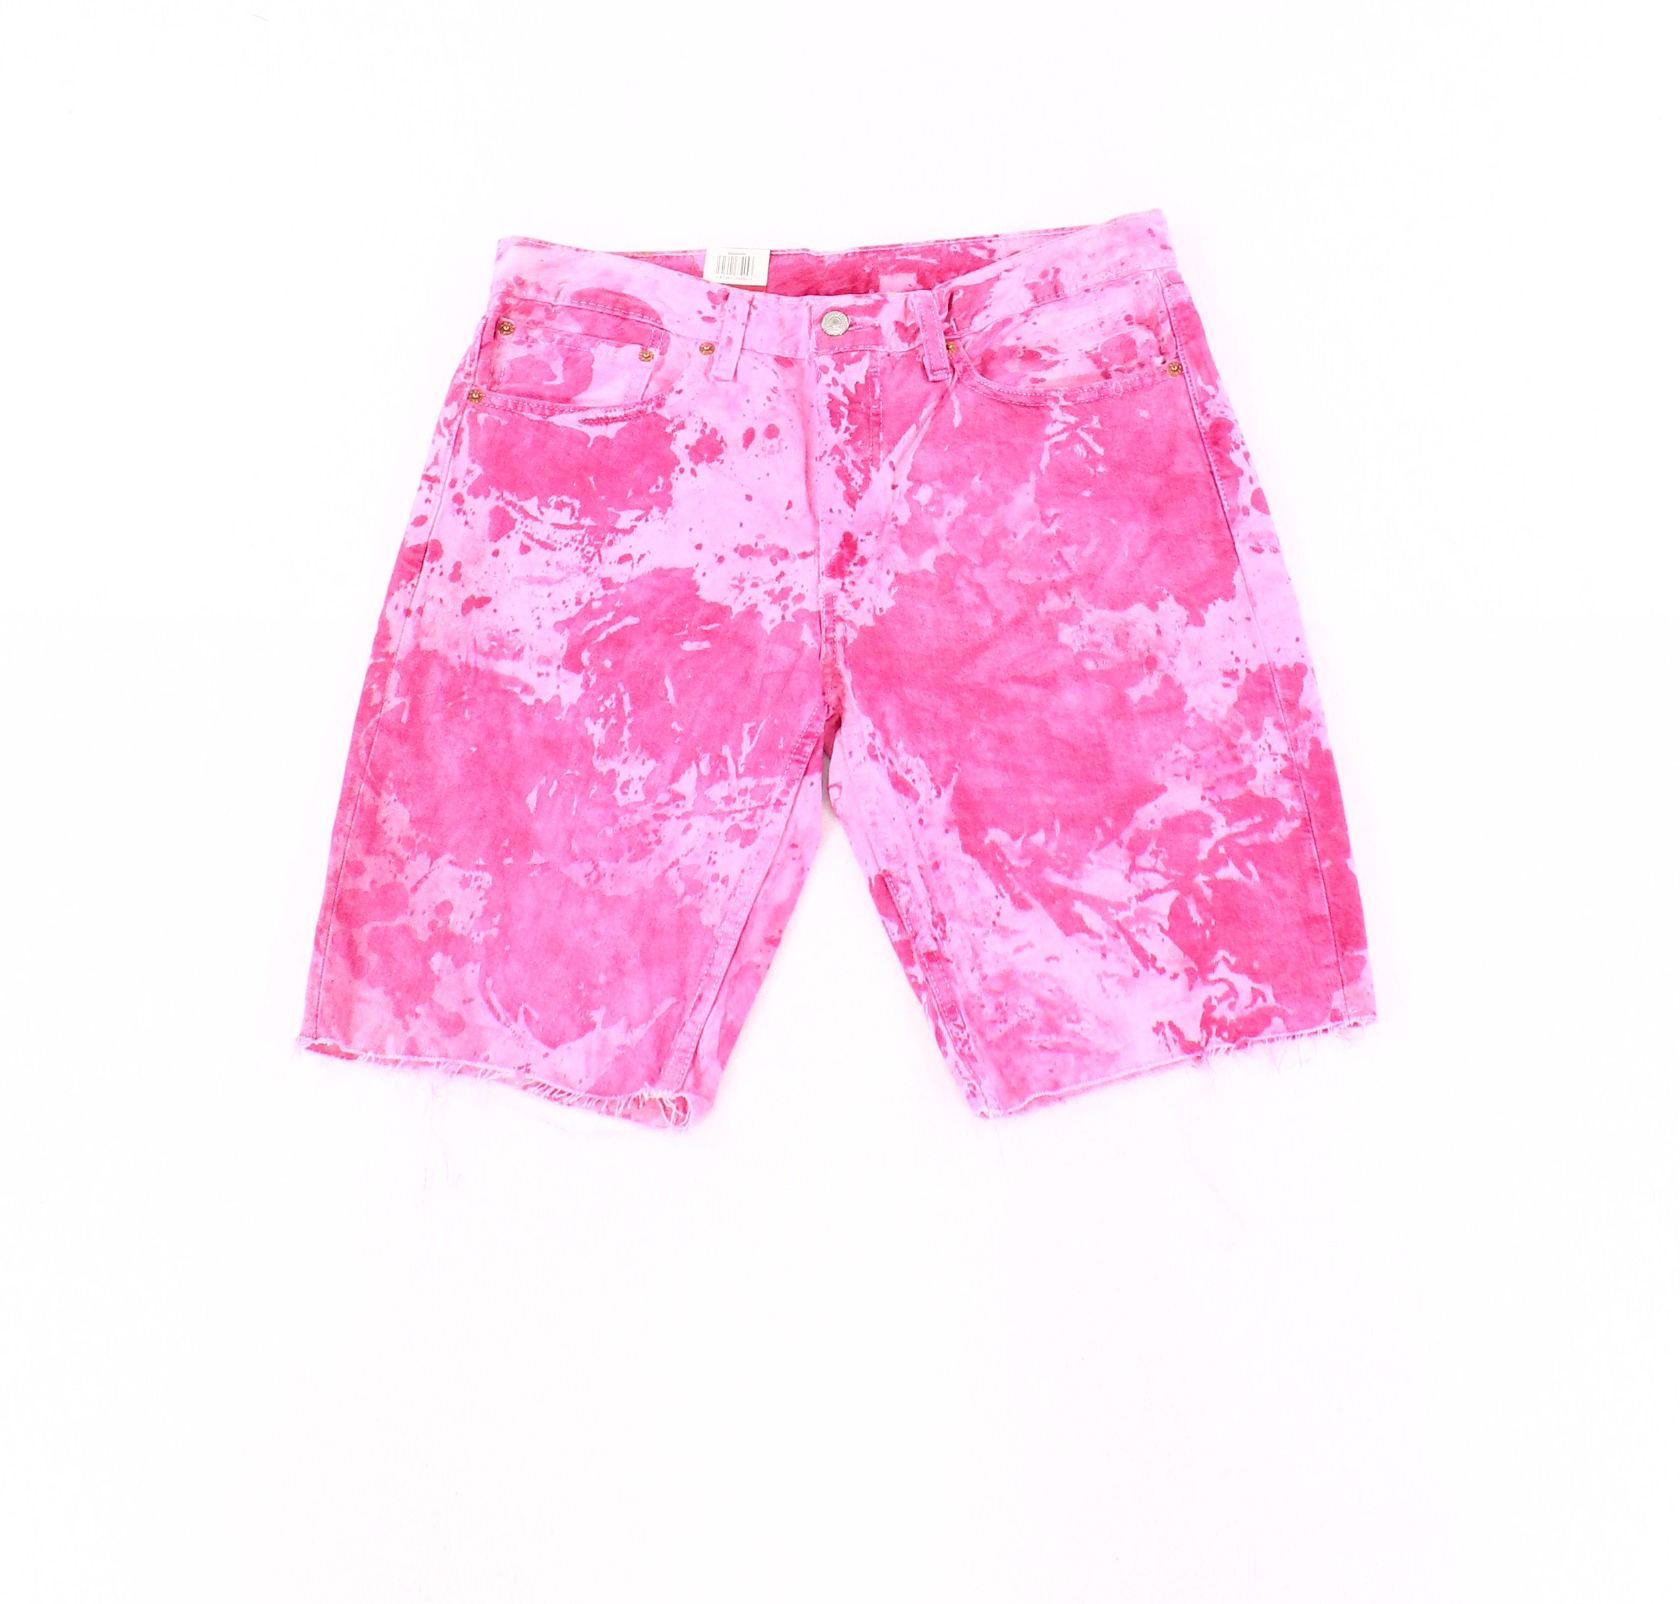 Levi-039-s-Mens-Pink-Shorts-Size-33-Frayed-Denim-Cotton-511-Slim-Cut-Off